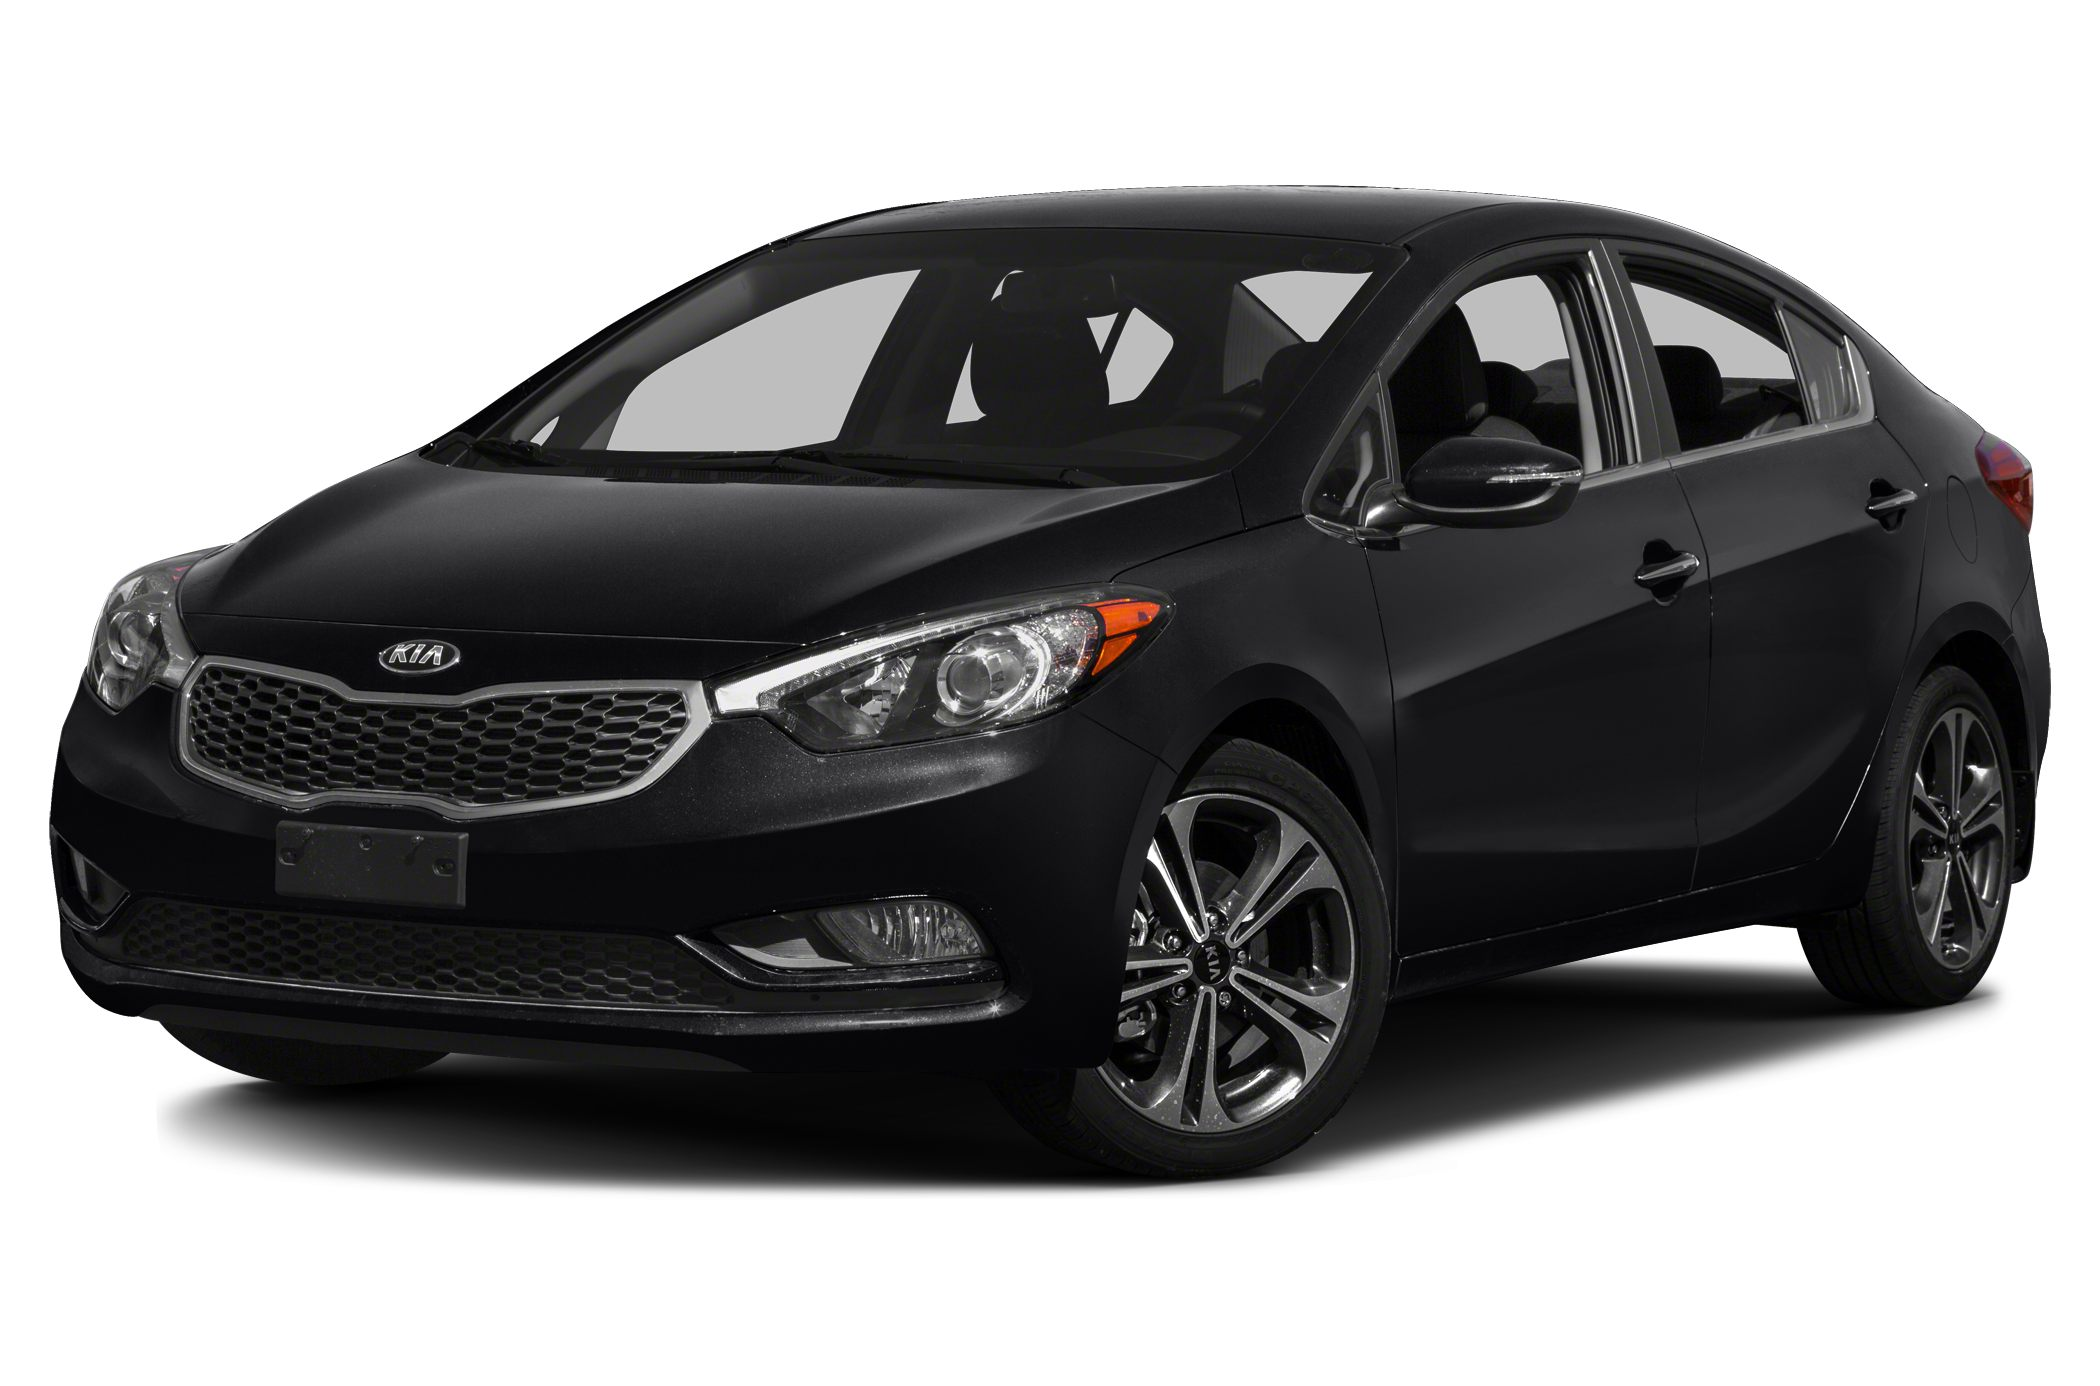 2014 Kia Forte EX Sedan for sale in Pendleton for $16,900 with 16,172 miles